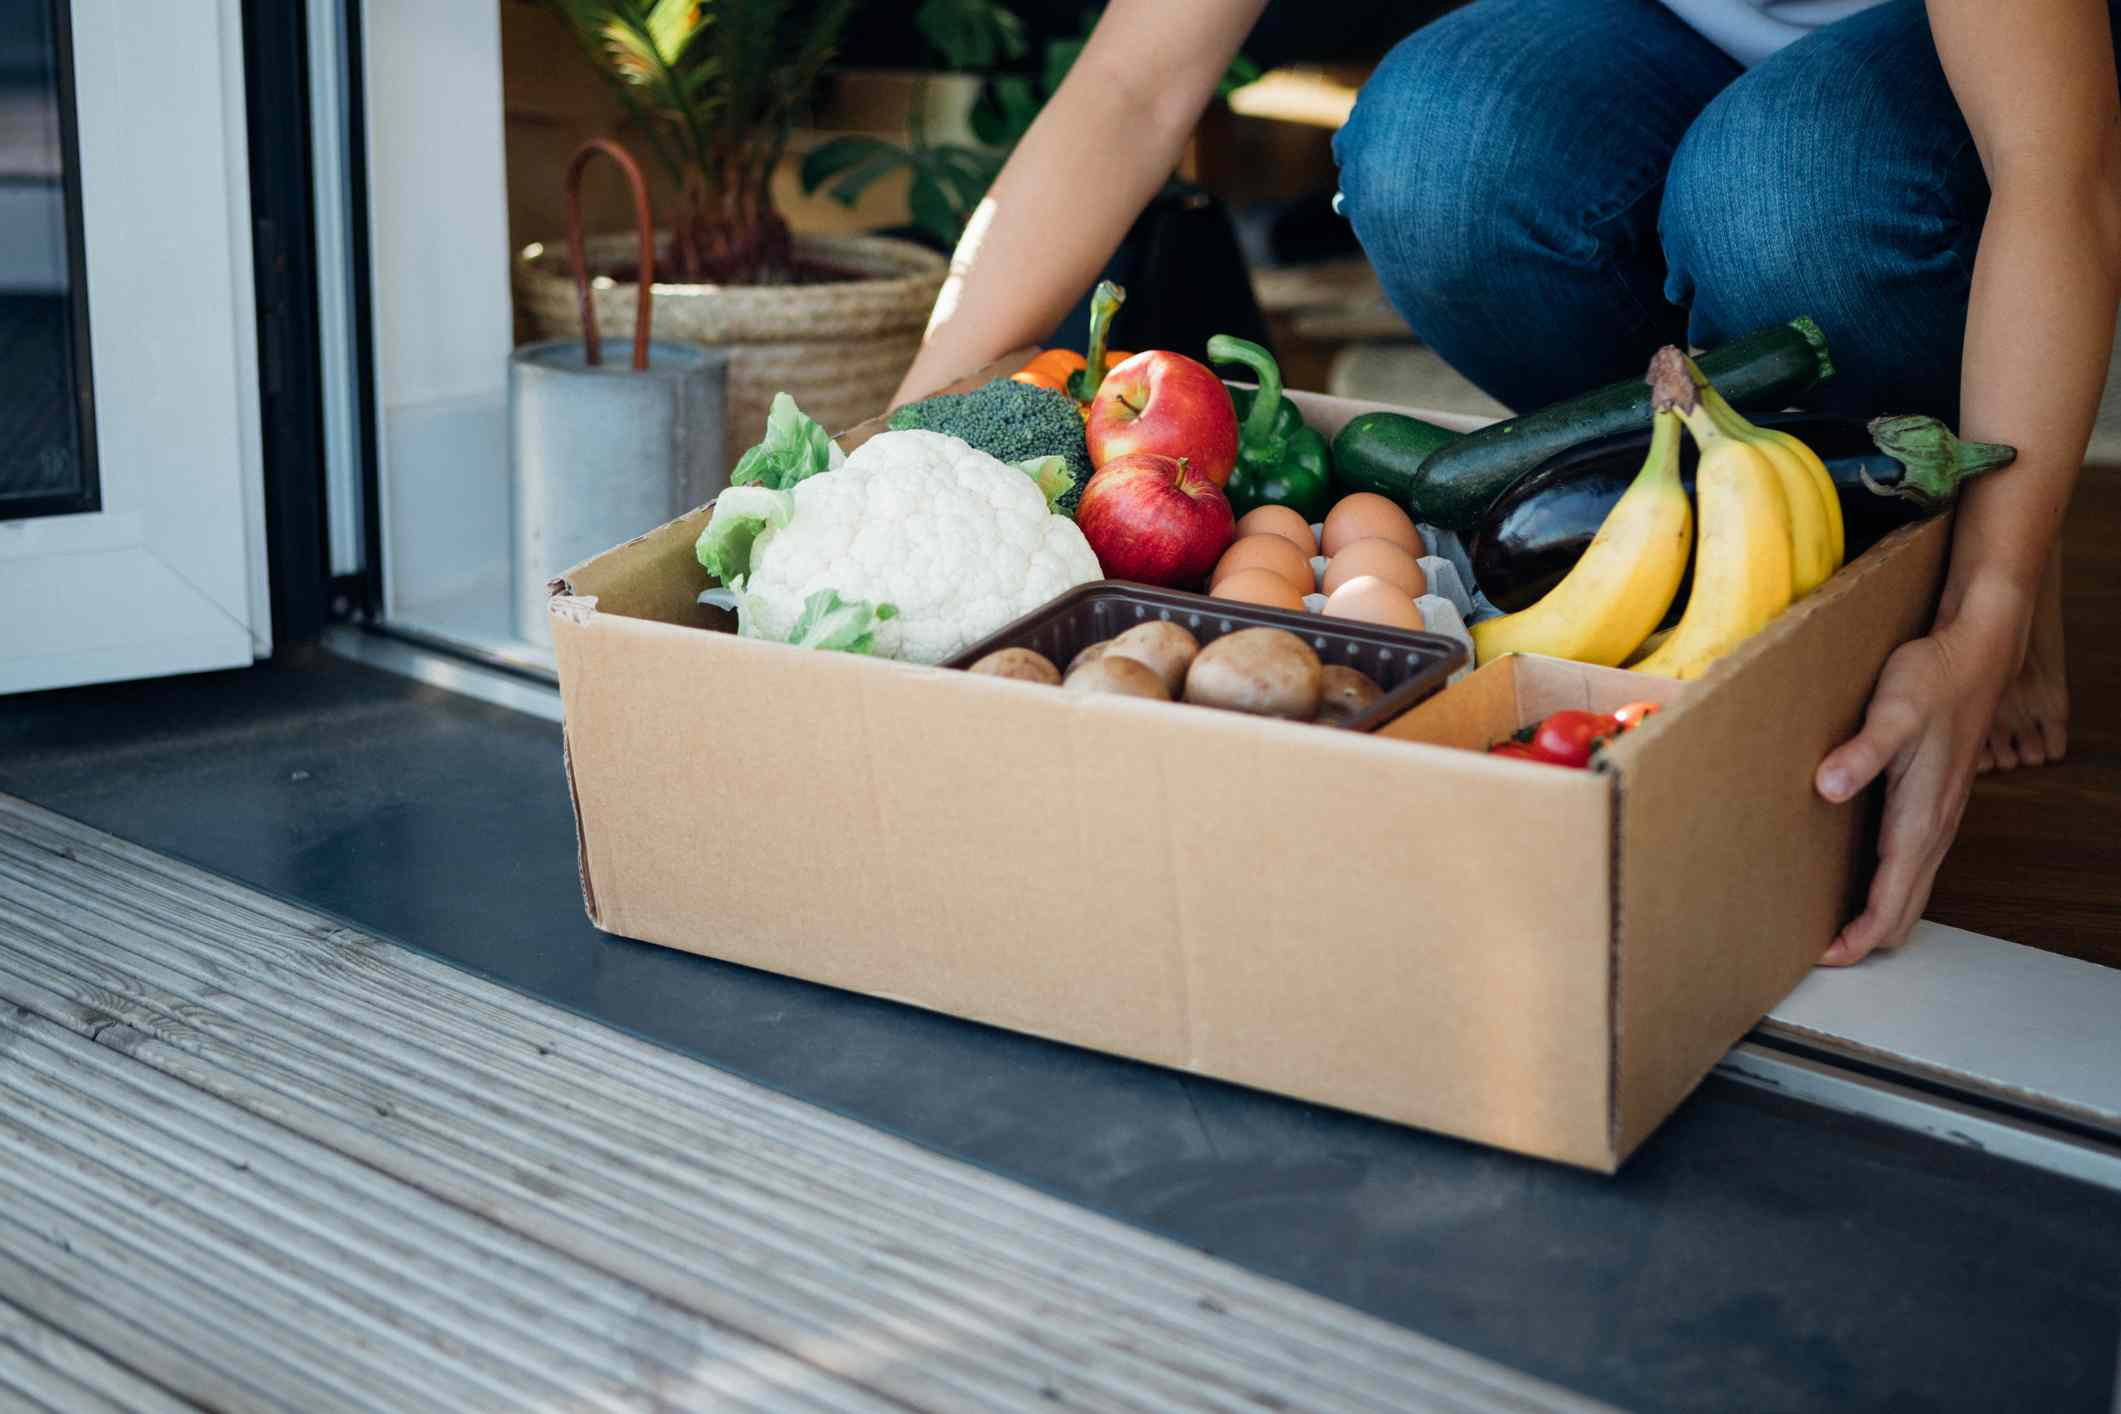 Woman receives fresh food delivery